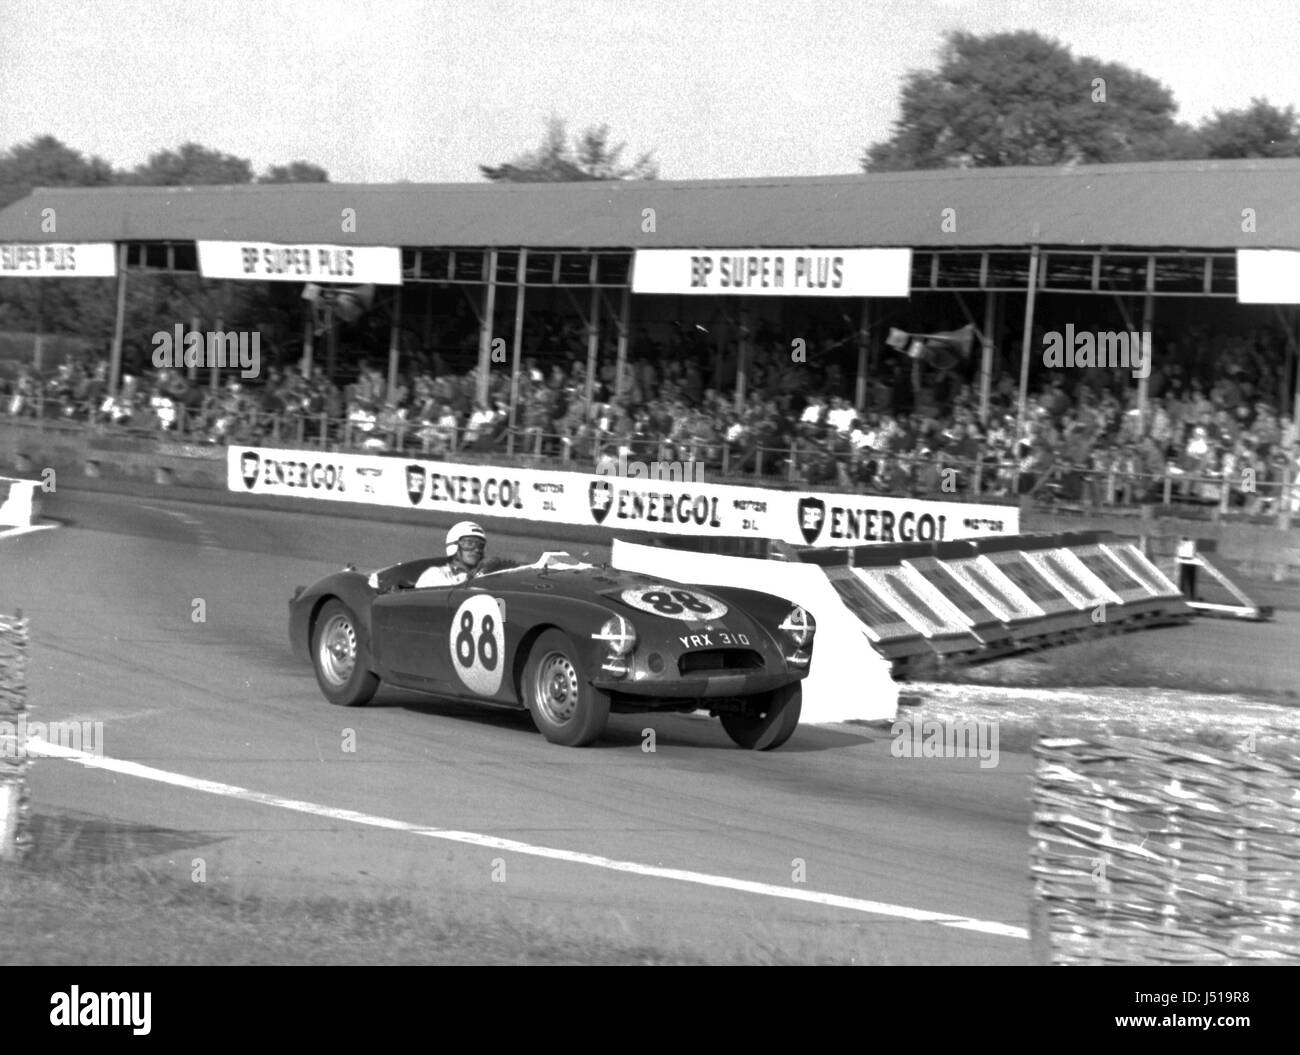 MGA twin cam, Olthoff 1961 Goodwood - Stock Image